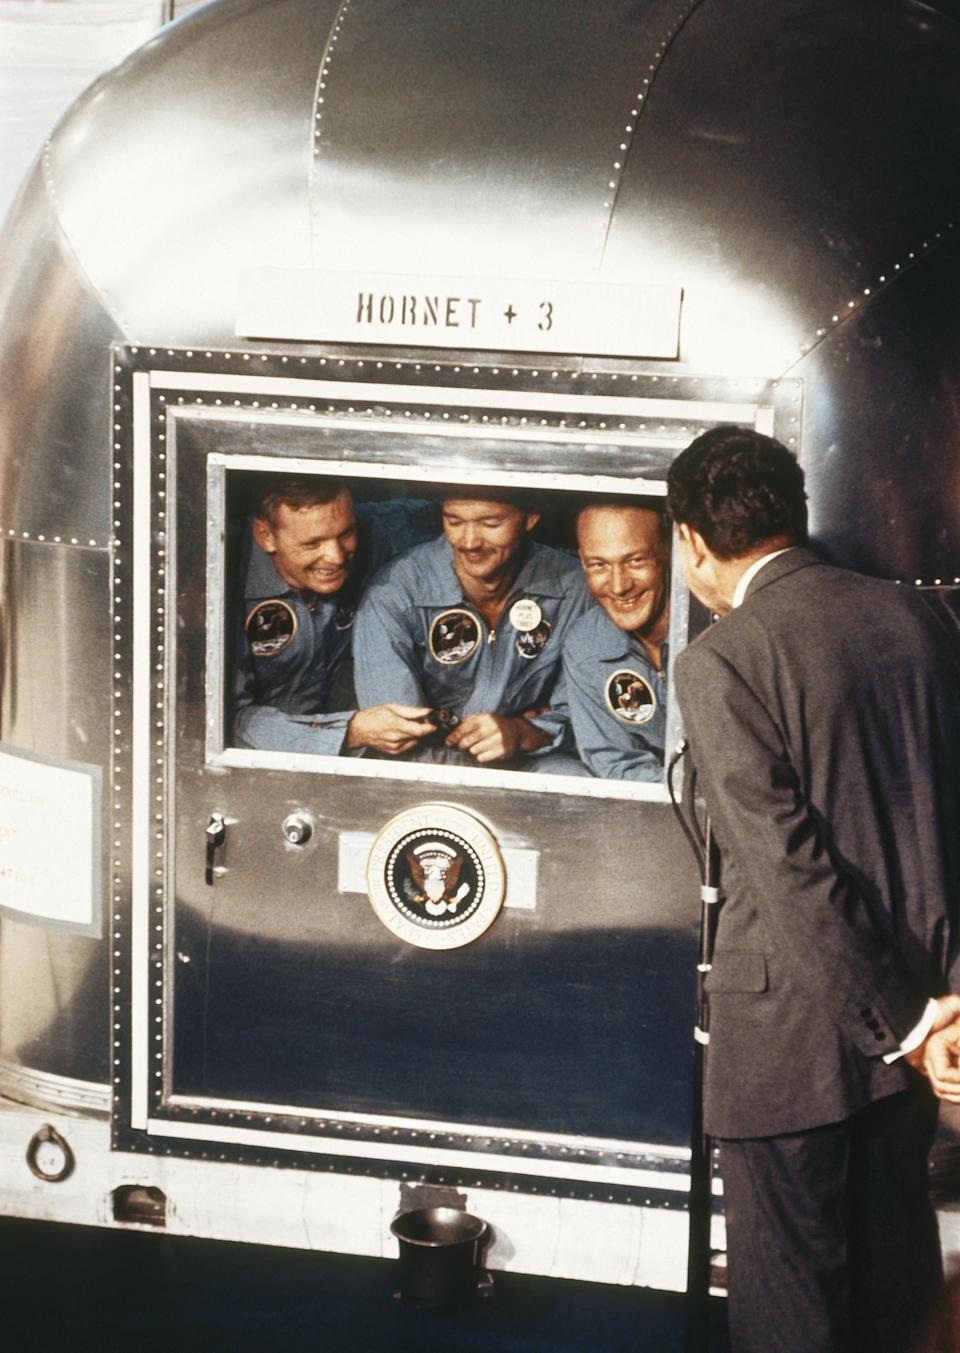 "FILE – In this July 24, 1969 file photo, President Richard Nixon, right, greets the Apollo 11 astronauts in the quarantine van on board the U.S.S. Hornet after splashdown and recovery. The Apollo 11 crew from left are Neil Armstrong, Michael Collins, and Edwin ""Buzz"" Aldrin. (AP Photo, File)"